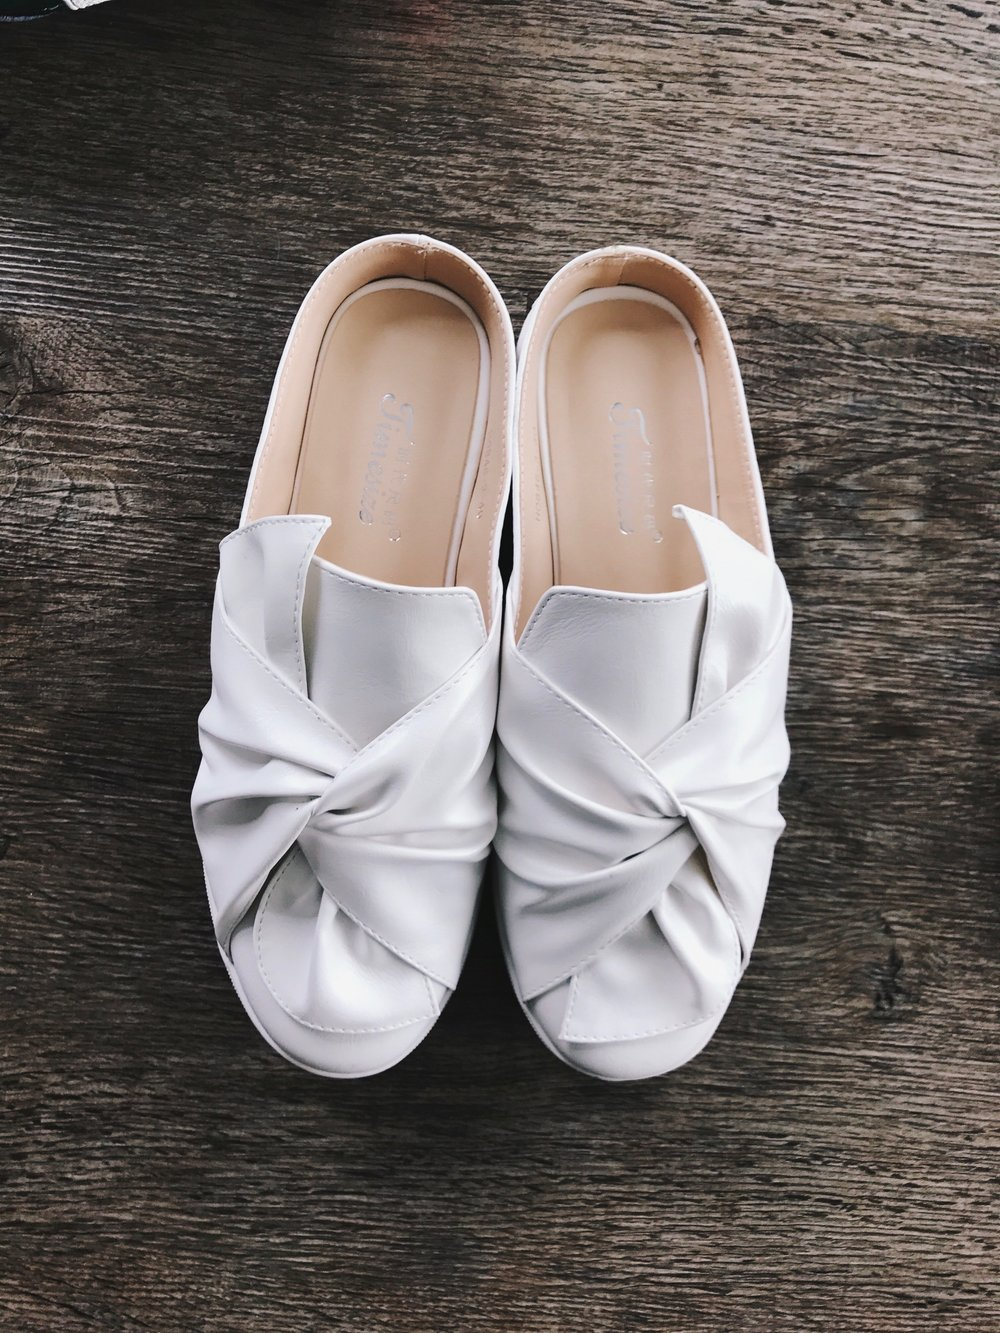 These  White Faux Leather Round Toe Slippers  ($32) are a bit unique as they're not a direct replica but rather a rendition of  Ports 1961 Knotted Sneakers  ($595). They are incredibly comfy with a bit of platform, and definitely my most adventurous pair of the set. I'm excited to match these with an all white outfit, featuring white denim, a white and black striped blouse, and geometric gold hoops.